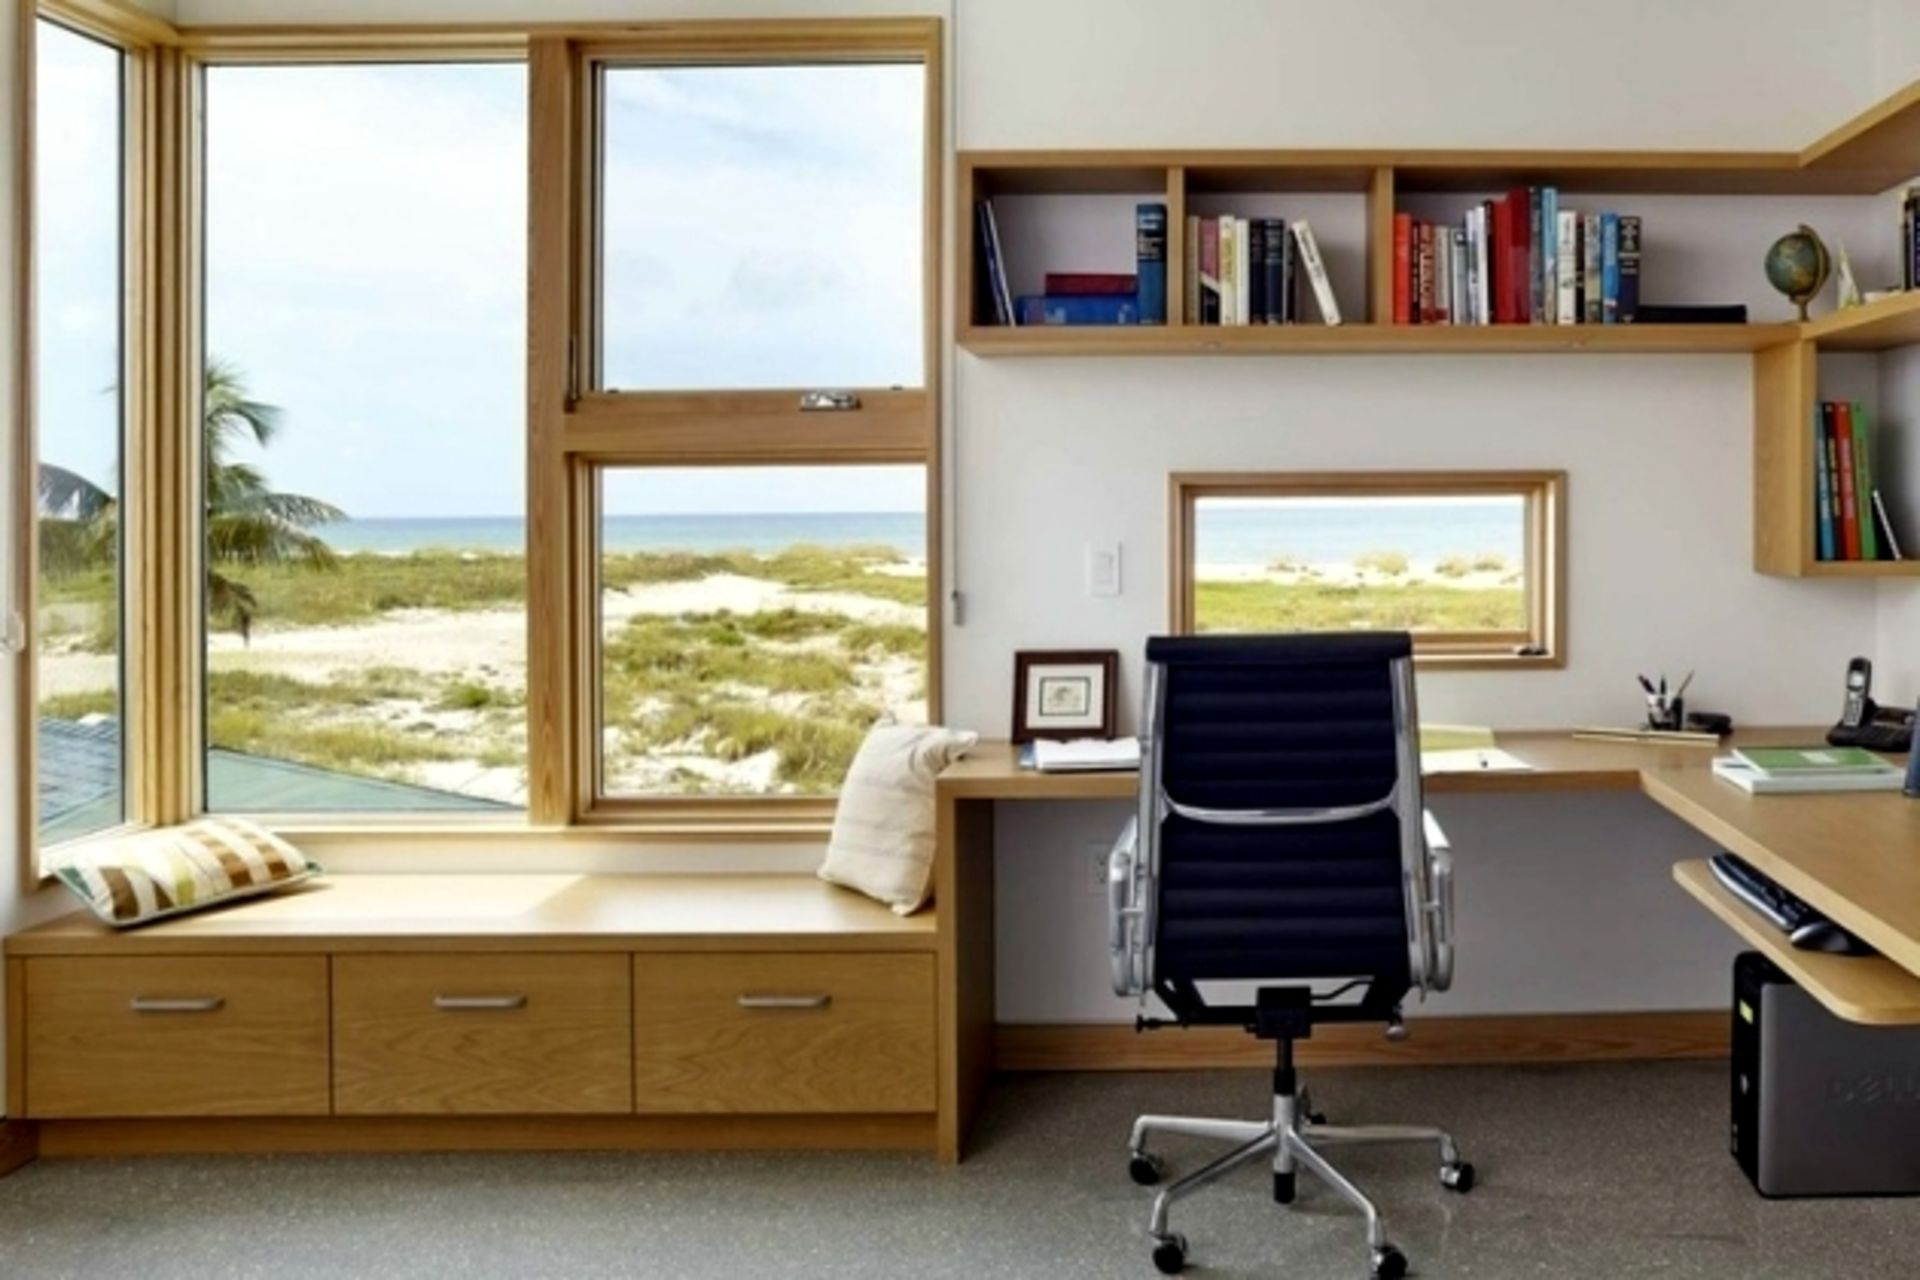 5 Home Office Upgrades to Make This Year